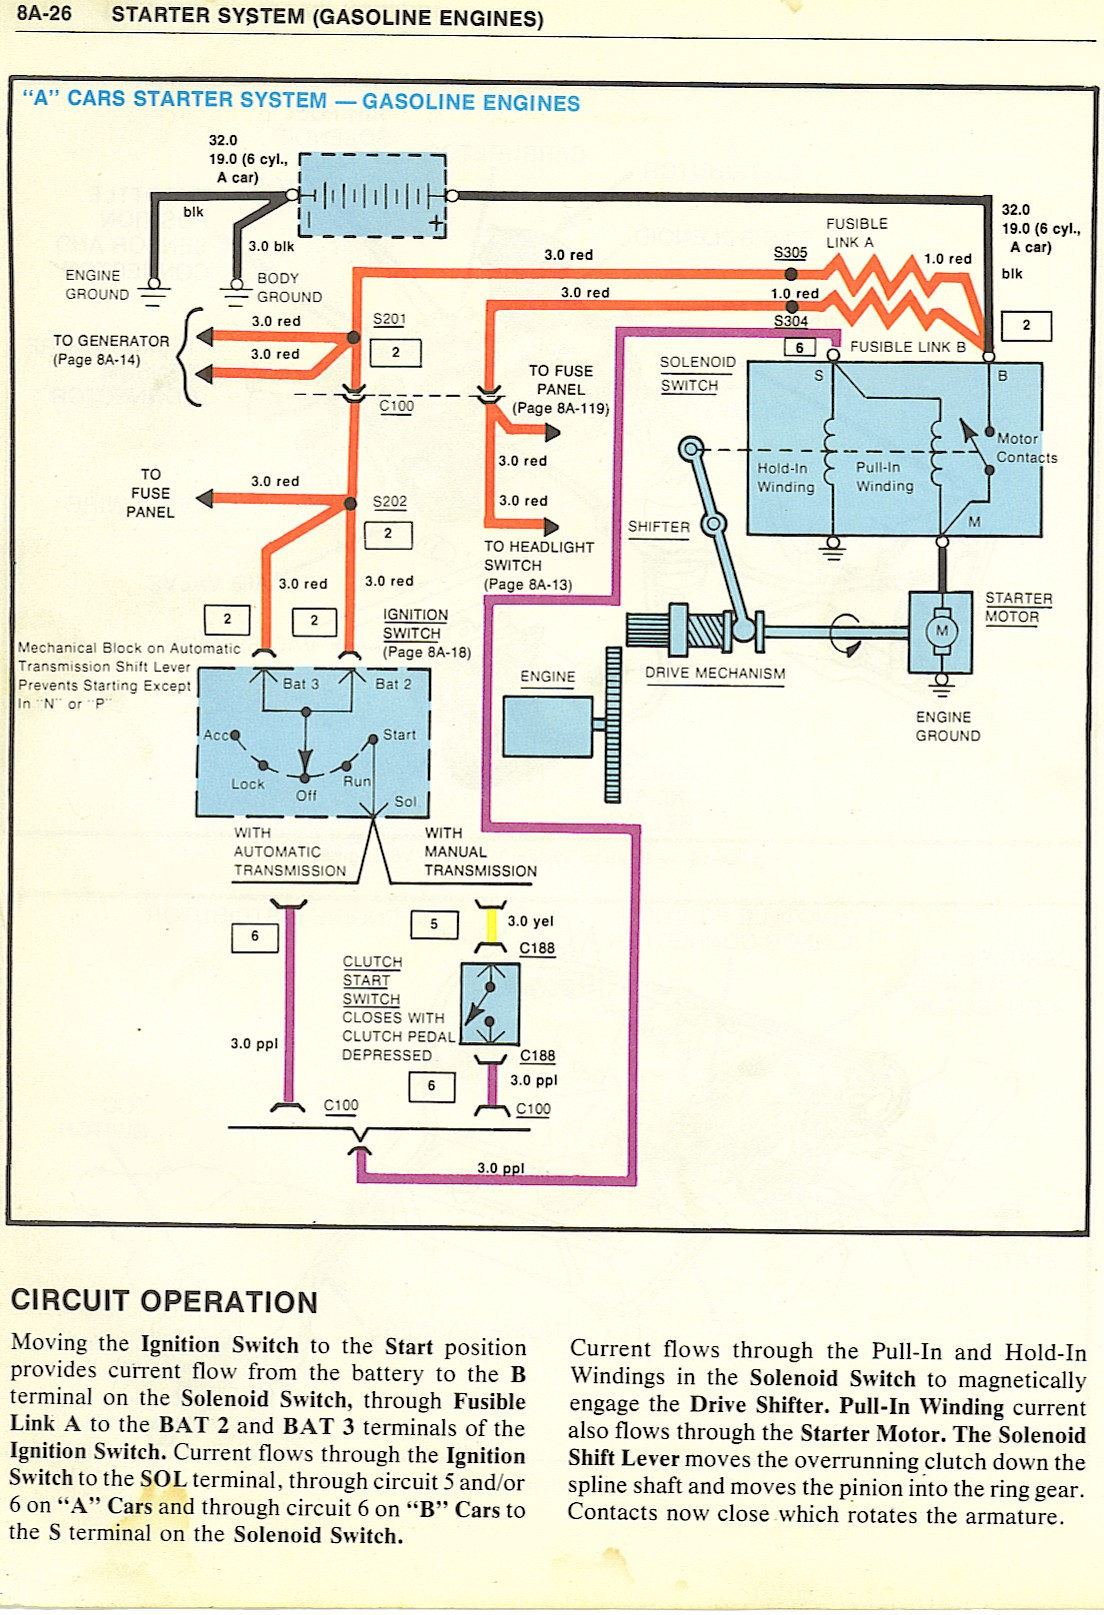 350 chevy engine wiring diagram for 1972 fj40 ah 3780  78 monte carlo wiring diagram  ah 3780  78 monte carlo wiring diagram